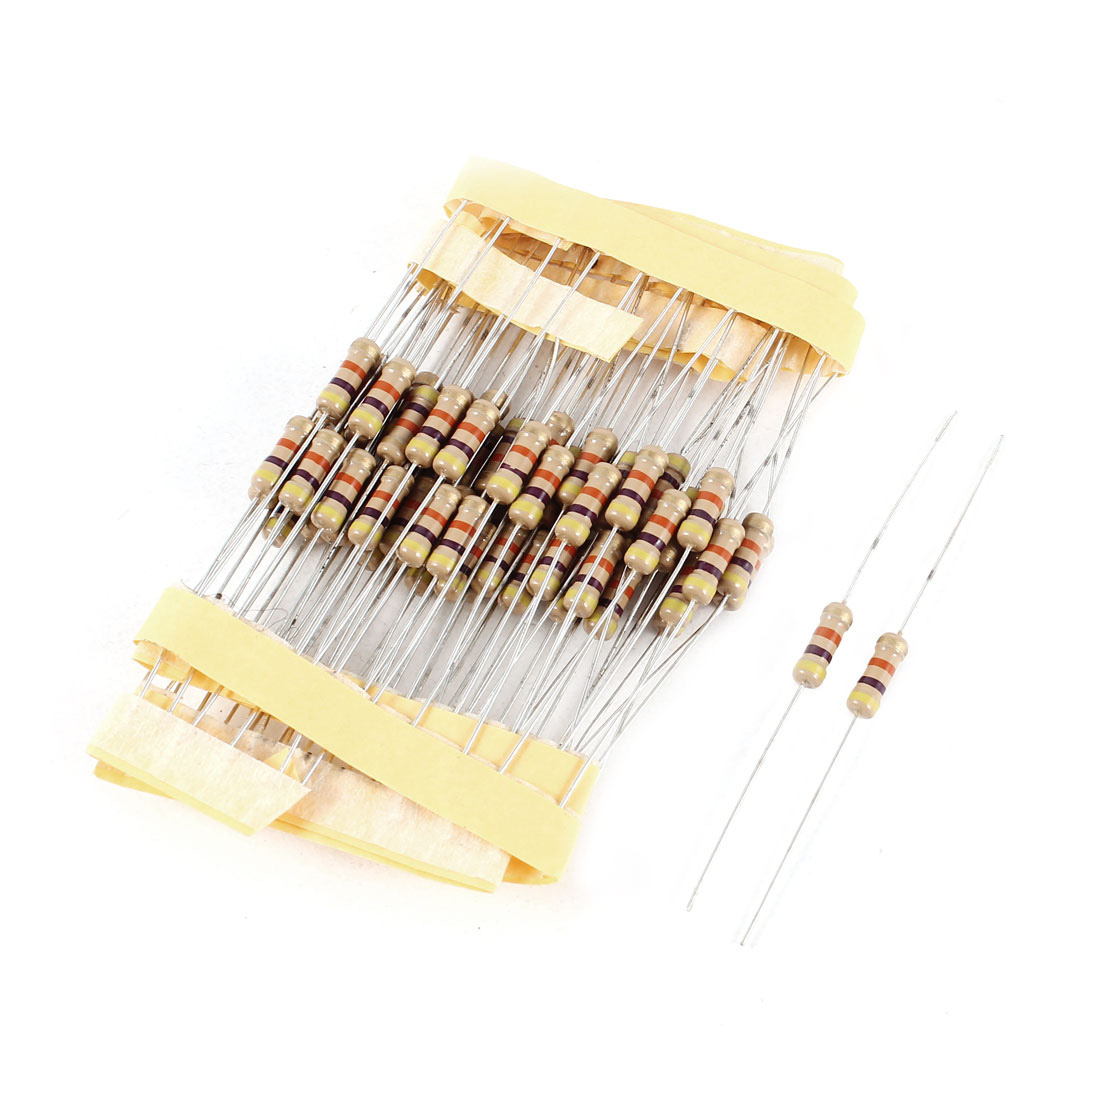 75 Pcs 0.5 Watt 47K Ohm 5% Tolerance Colored Ring Axial Lead Carbon Film Resistors